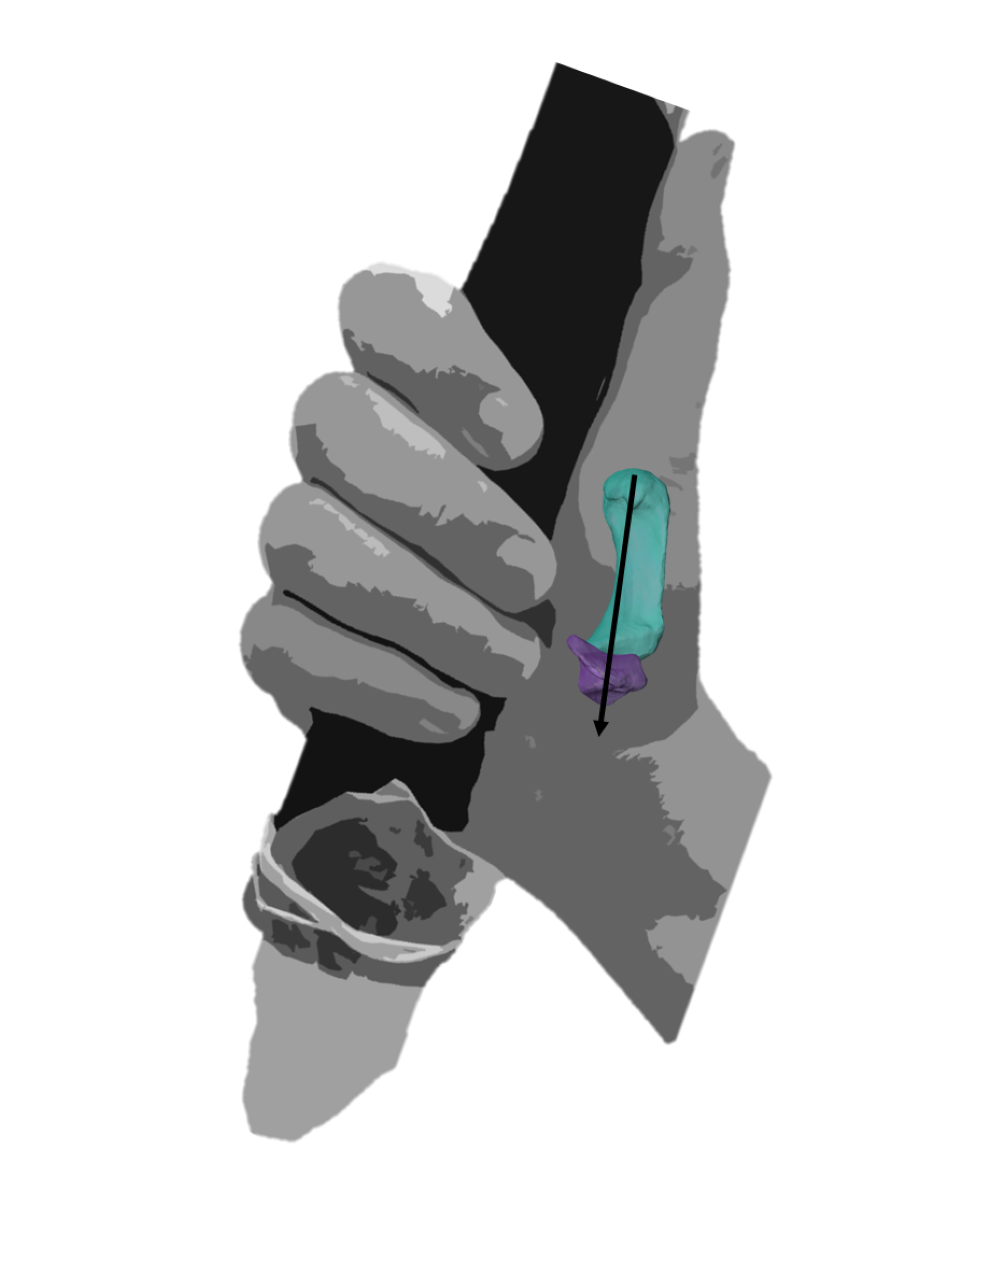 A modern human hand demonstrating a power squeeze grip